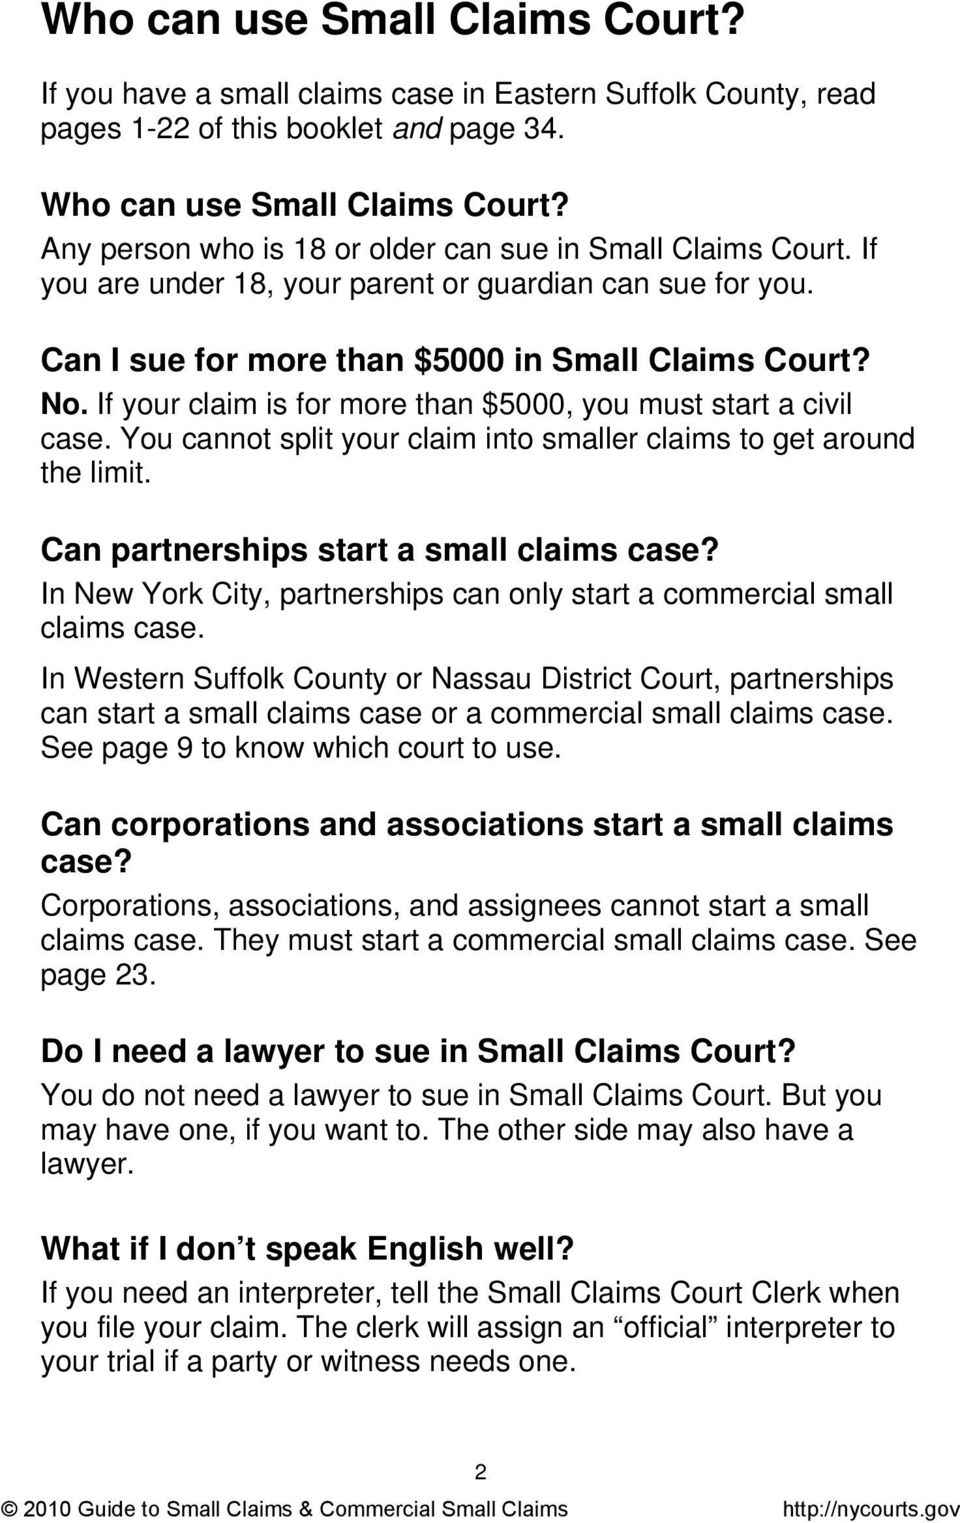 If your claim is for more than $5000, you must start a civil case. You cannot split your claim into smaller claims to get around the limit. Can partnerships start a small claims case?